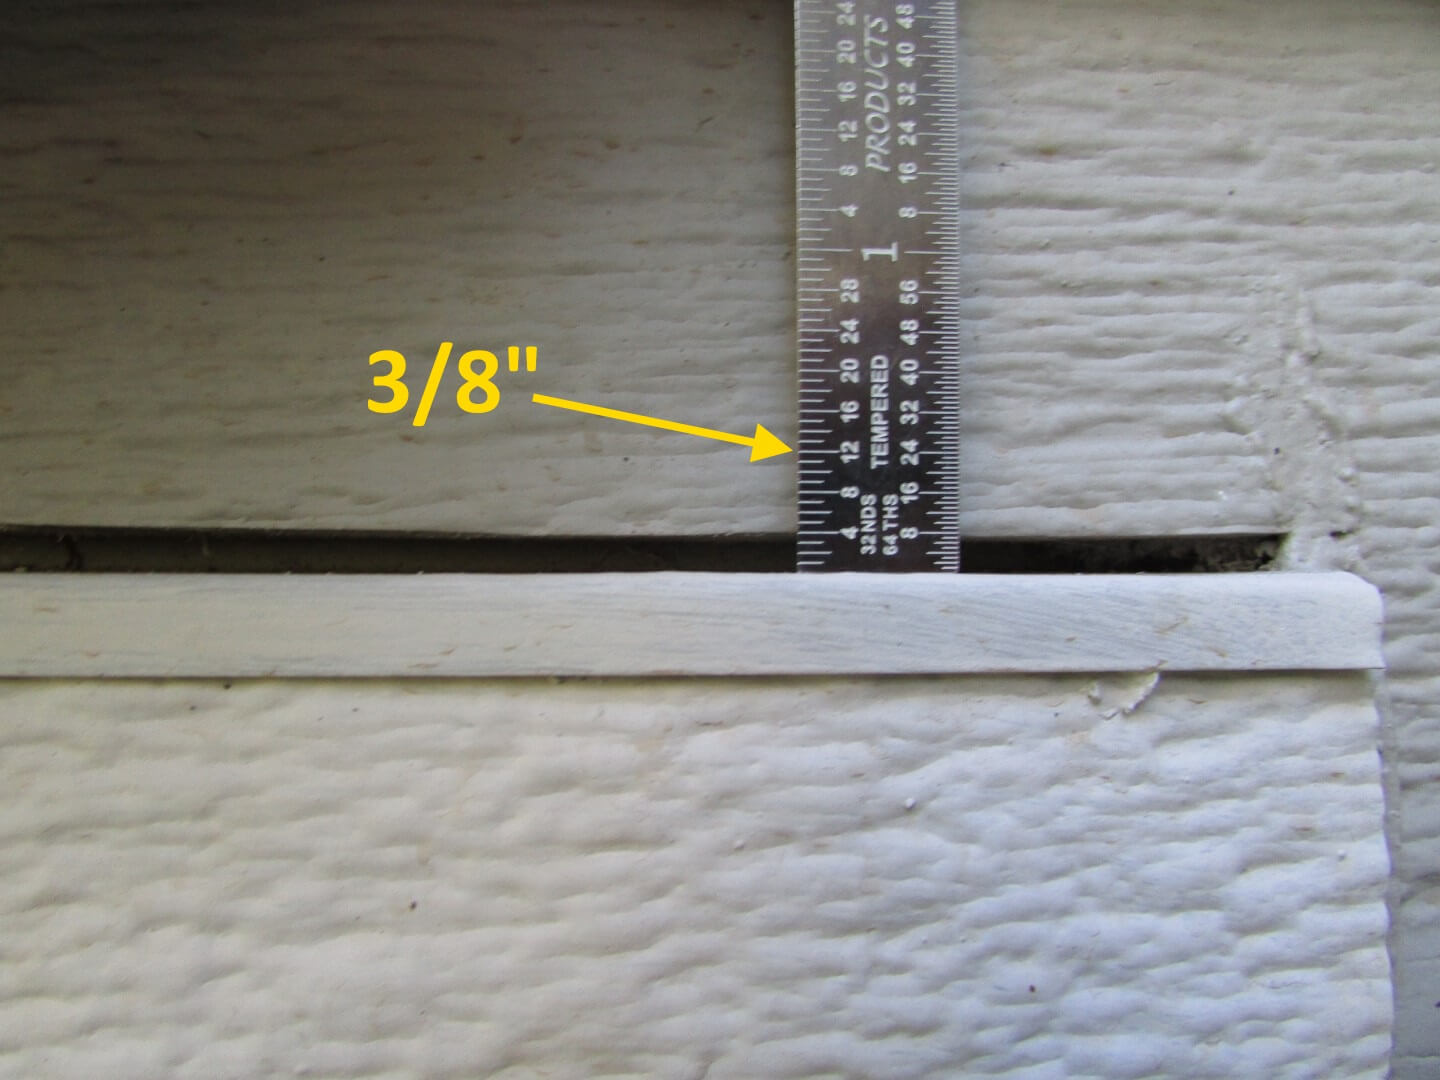 Many problems with installations of lp smartside siding improper clearance above window 2 asfbconference2016 Gallery